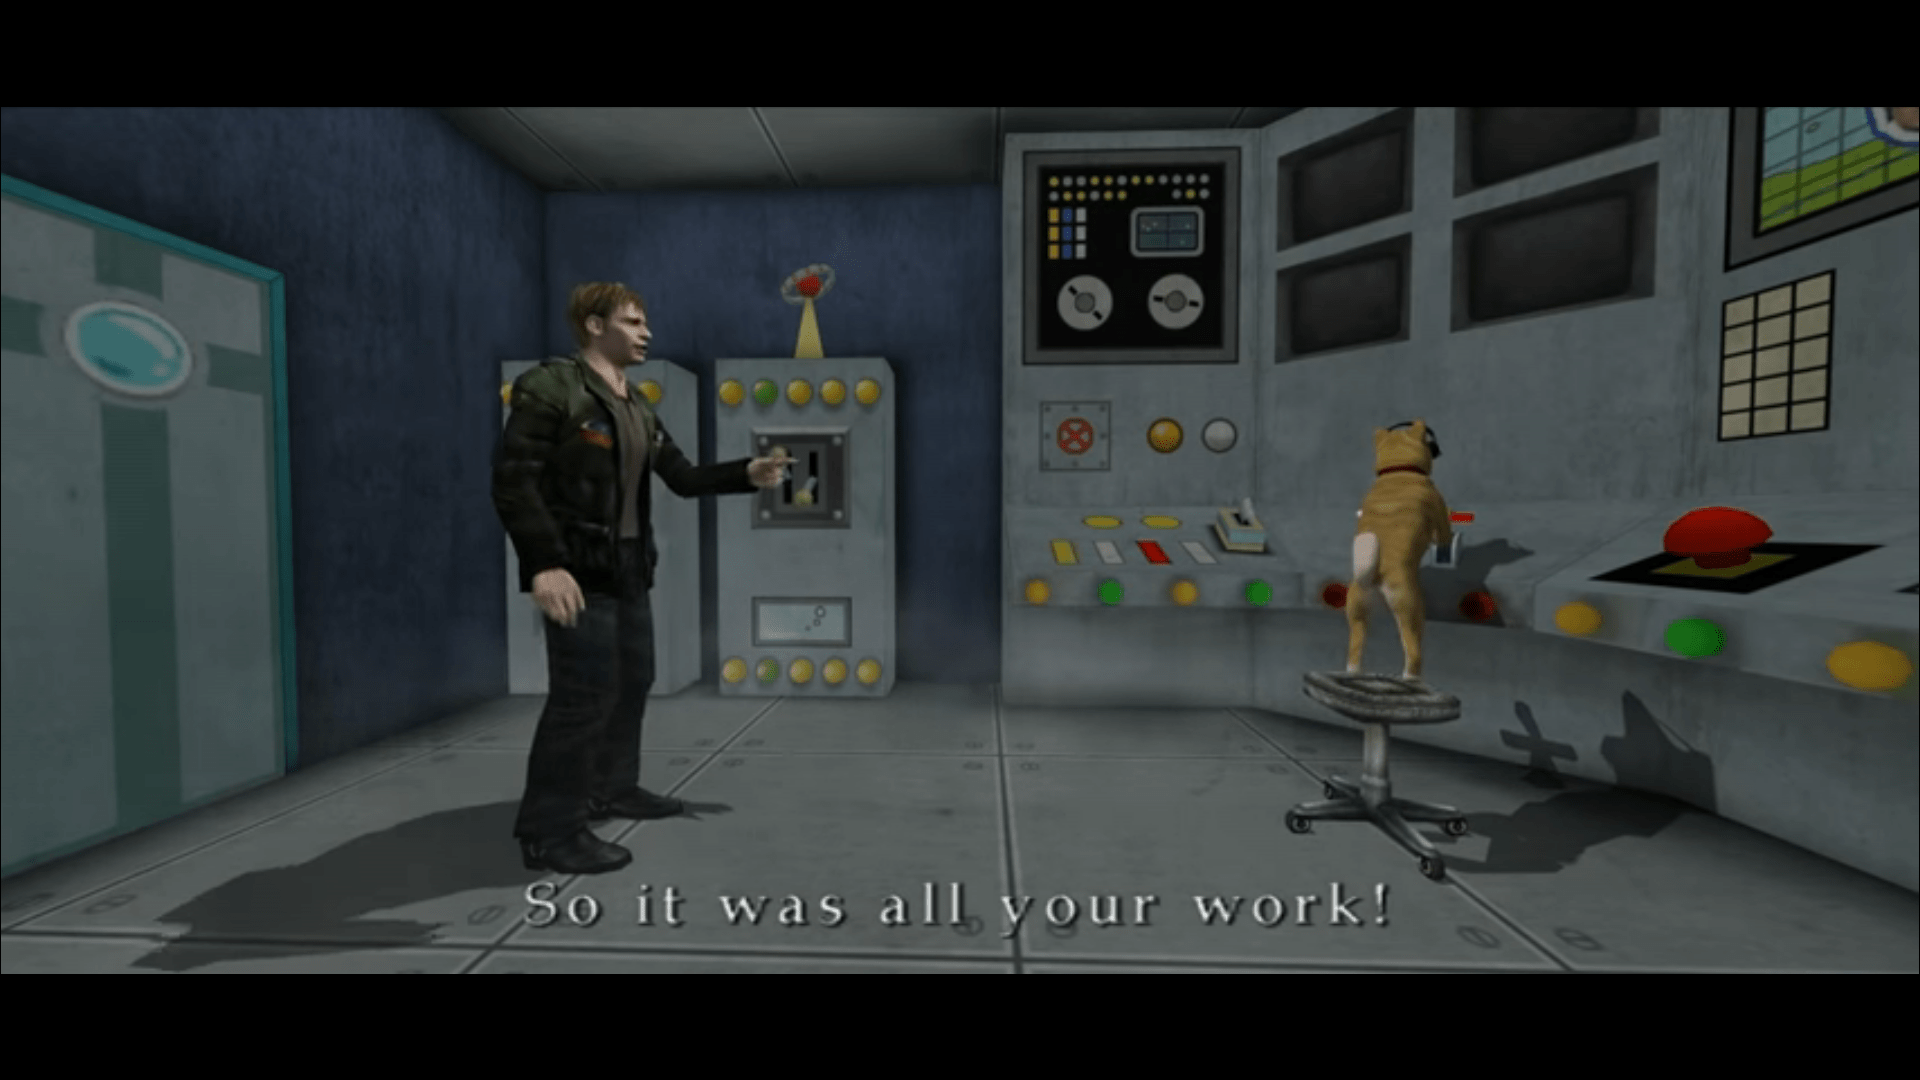 Silent Hill 2 Dog Ending it was all your work | Silent hill ...